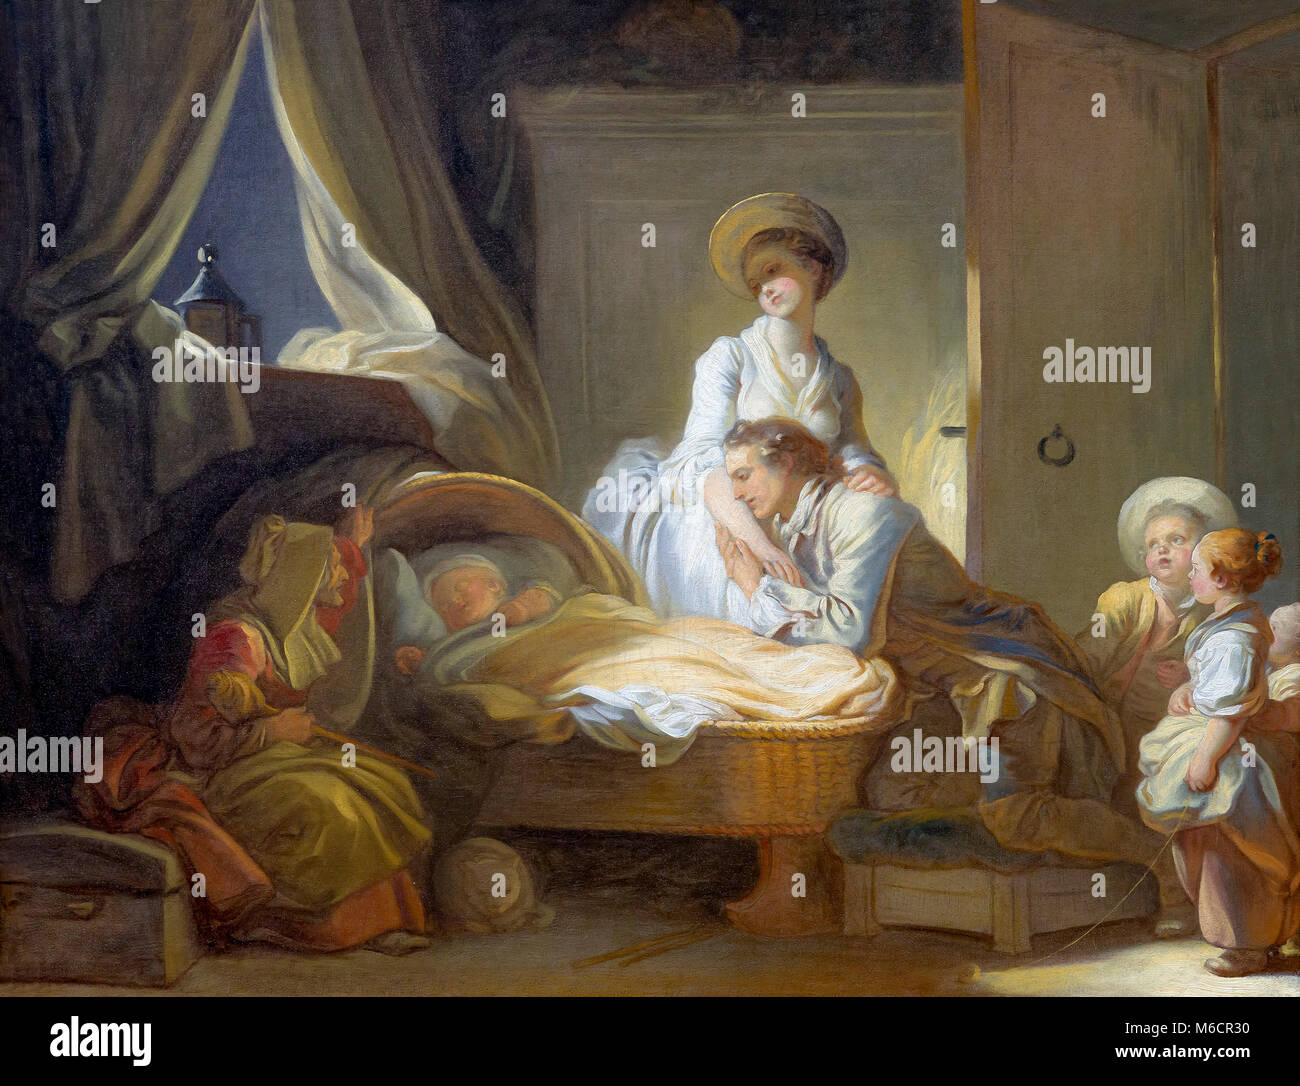 an analysis of jean honor fragonards oil painting a young girl reading The love letter by jean-honore fragonard handmade oil painting reproductions for sale, always custom made on premium grade canvas by talented artists.